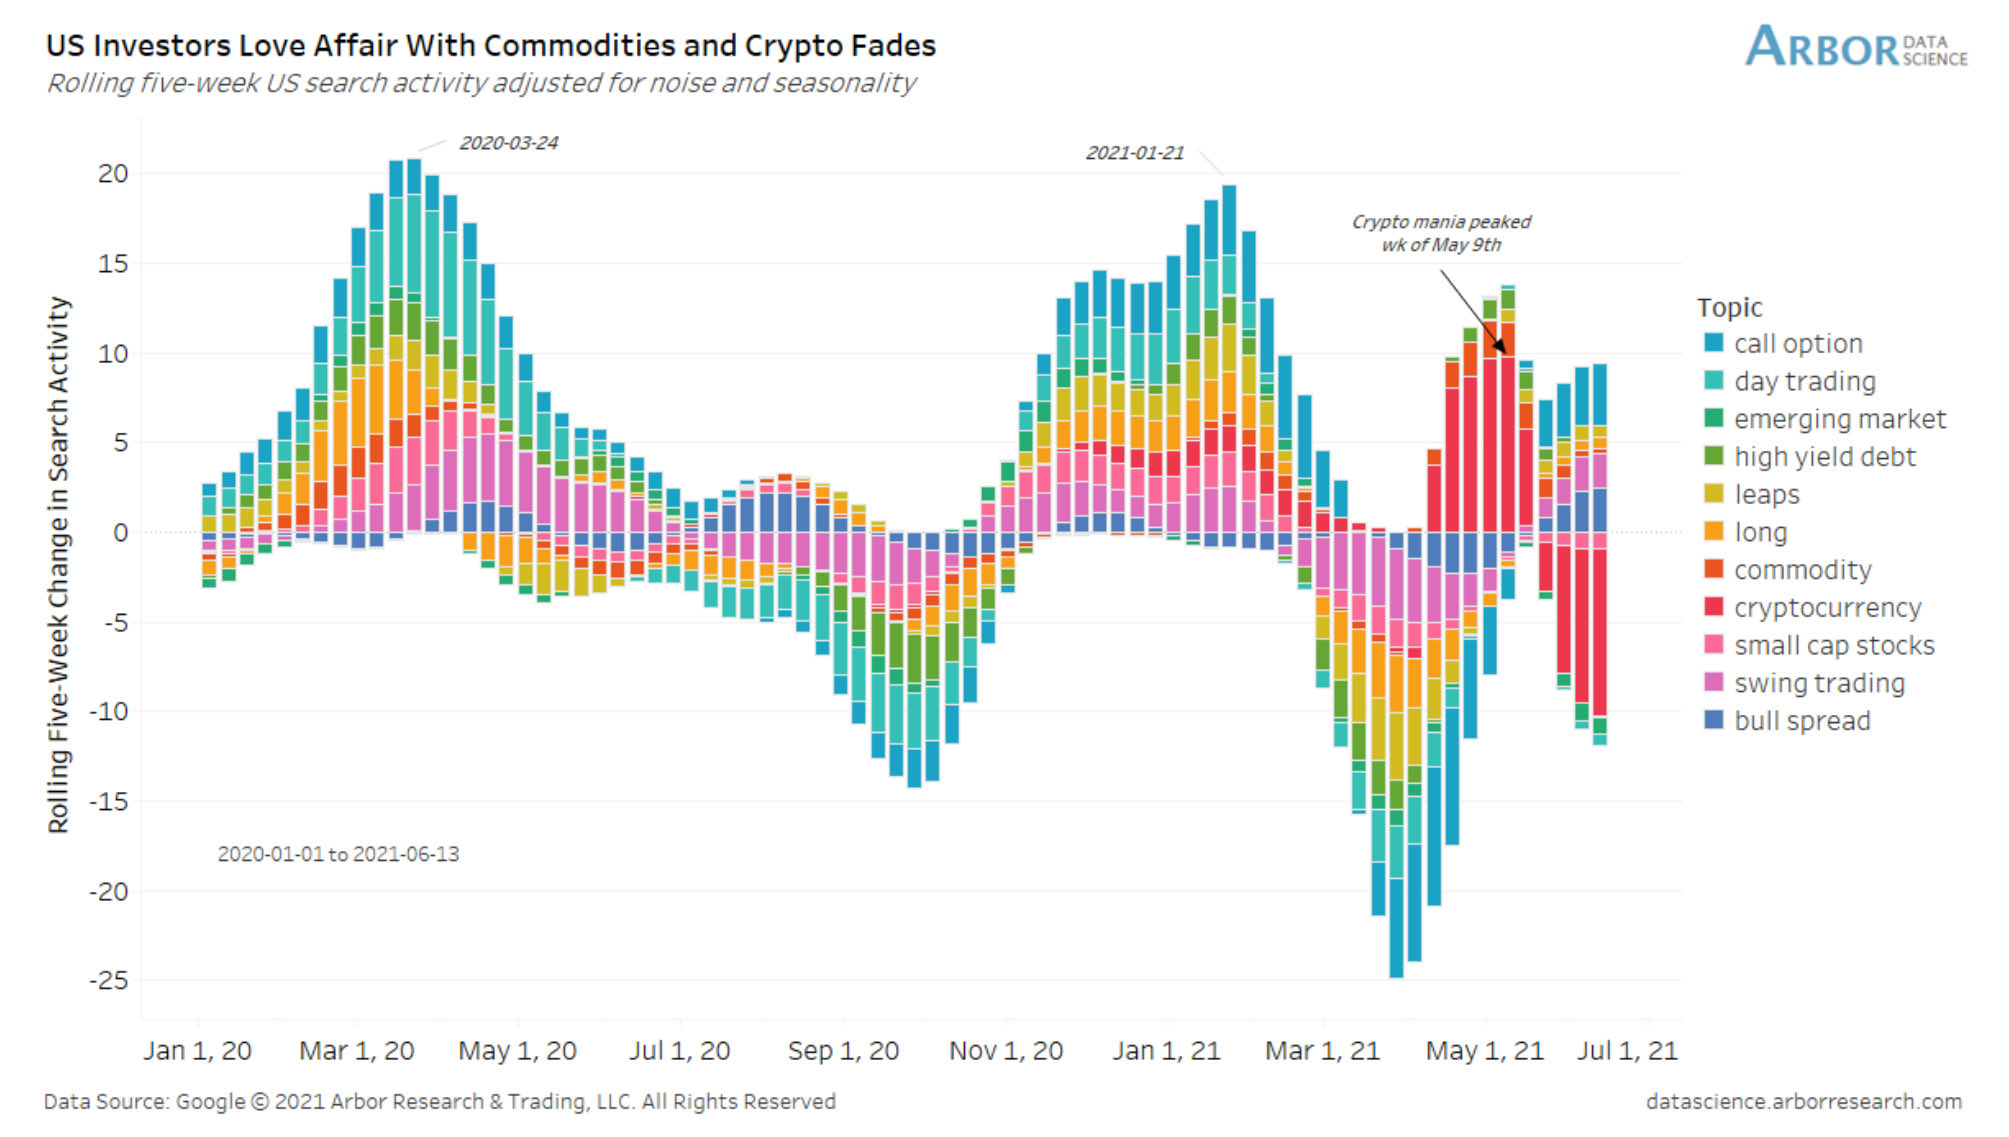 Cryptos and commodities are not that popular anymore